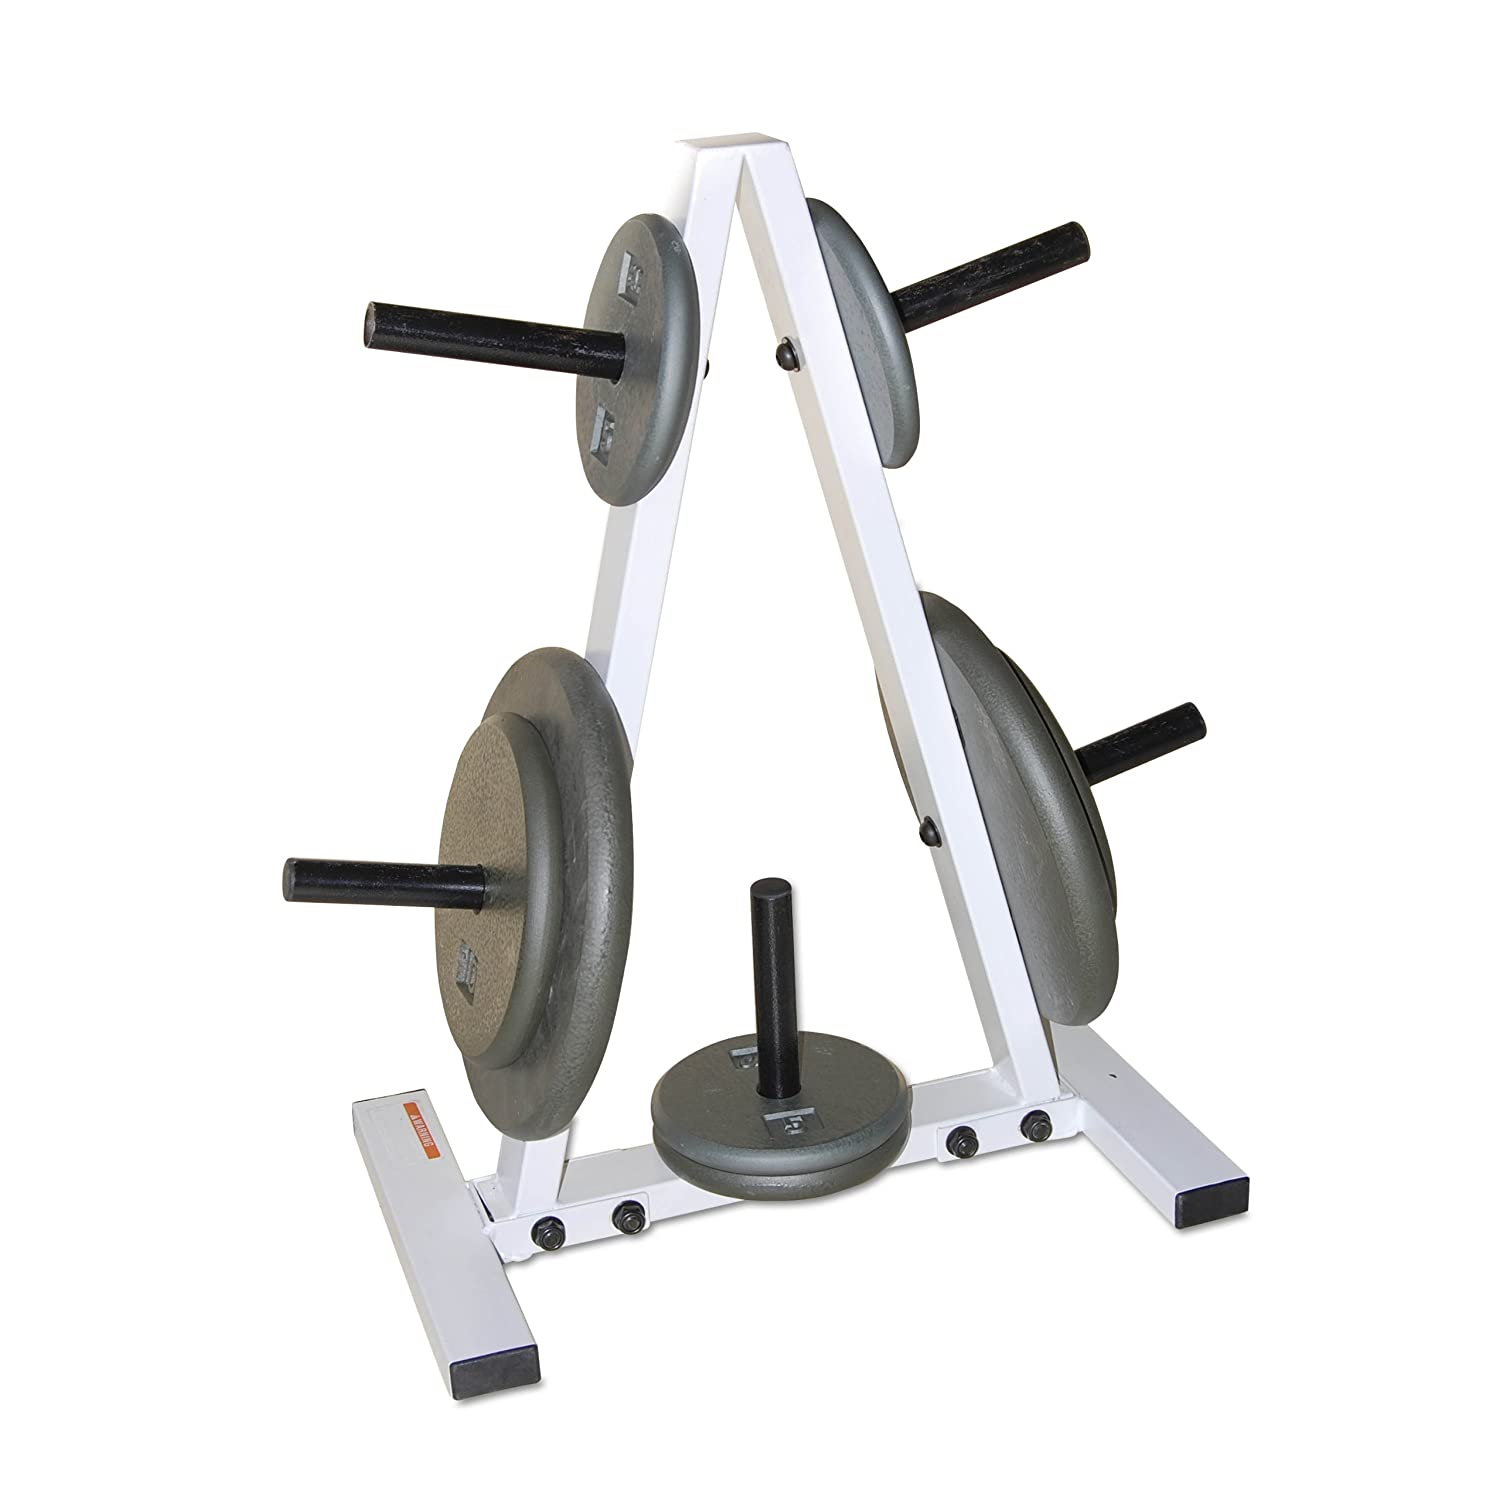 Amazon.com  CAP Barbell Standard Plate Rack Black and White 1\   Plate Trees  Sports \u0026 Outdoors  sc 1 st  Amazon.com & Amazon.com : CAP Barbell Standard Plate Rack Black and White 1 ...